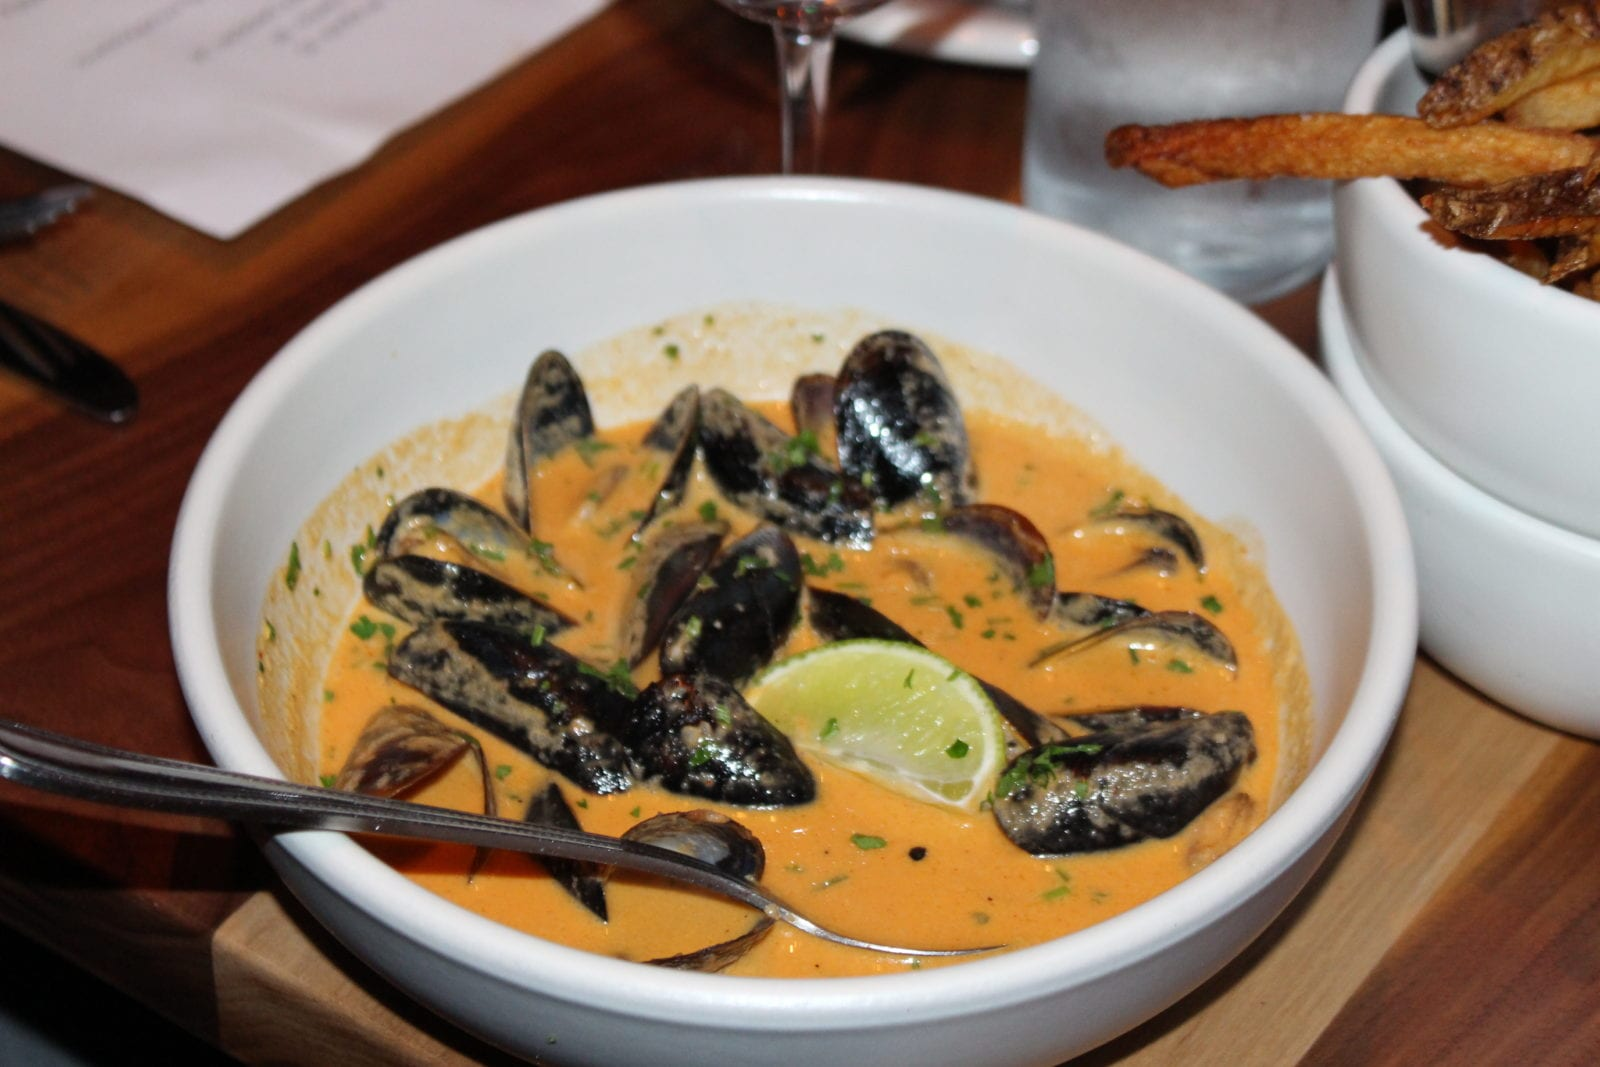 In this image, Adaleta (aka adaatude) is sharing one of her favorite appetizers, the mussels with Thai curry sauce, lemon wedge, herbs, and fries from Commoner and Co in Tucson, Arizona.